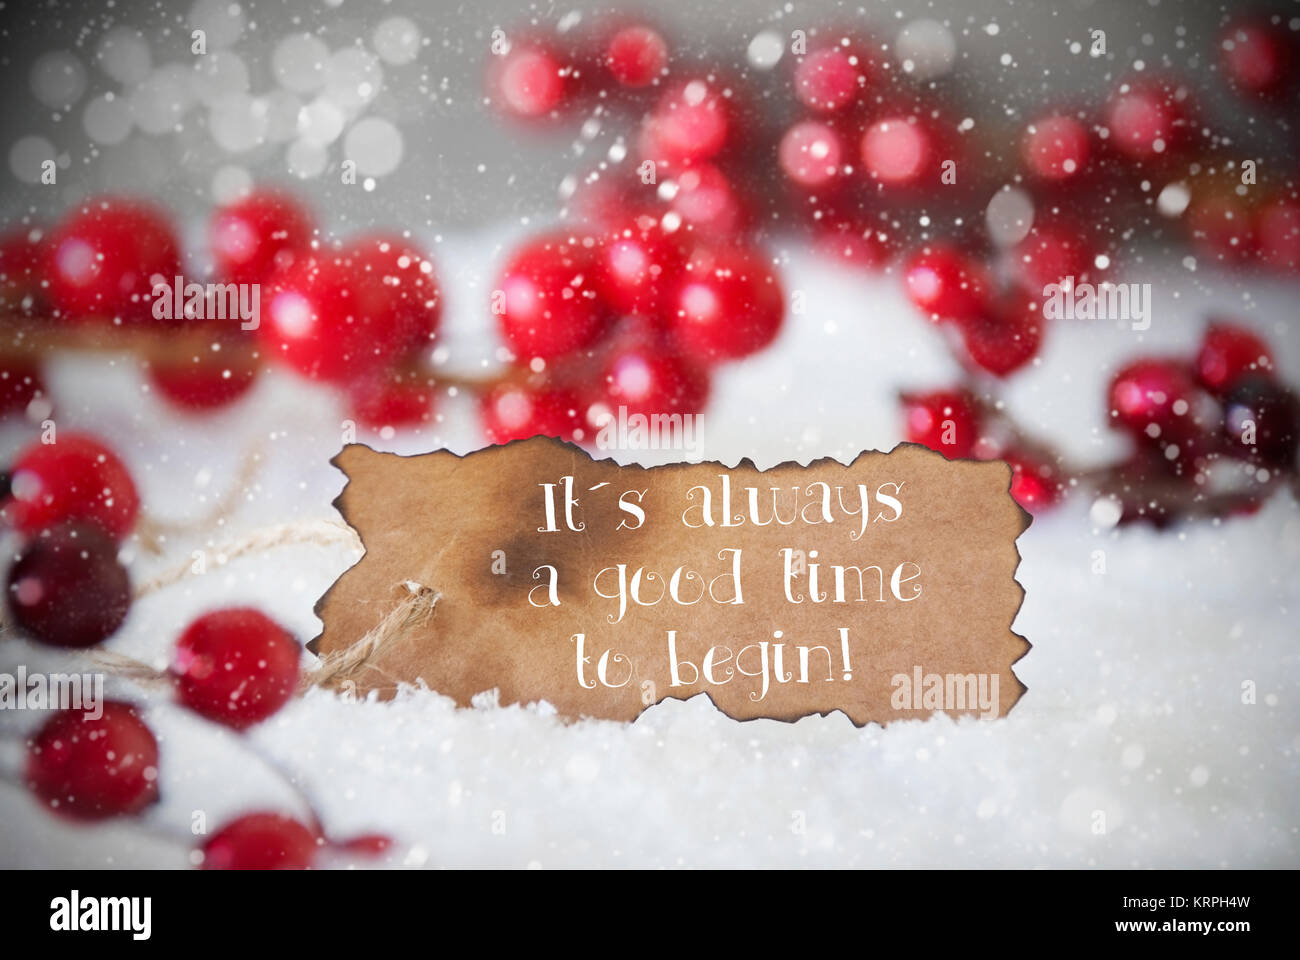 Burnt Label With English Quote It Is Always A Good Time To Begin. Red  Christmas Decoration On Snow. Cement Wall As Background With Bokeh Effect  And ...